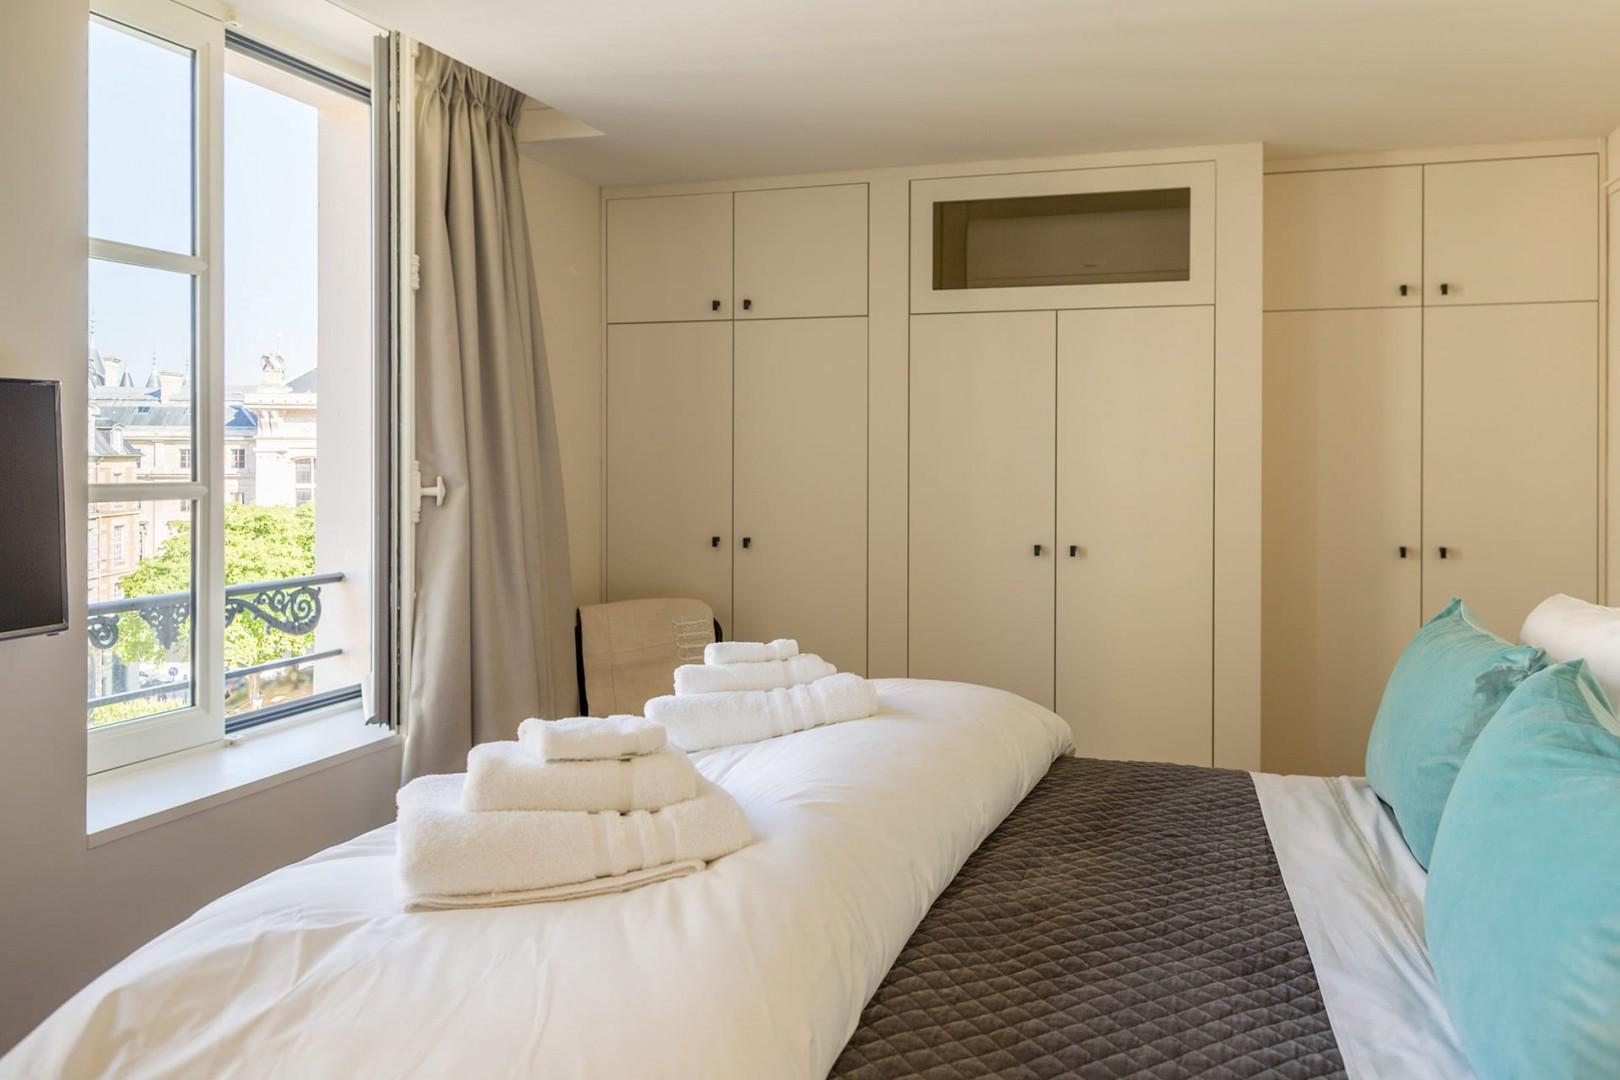 The bedroom overlooks Place Dauphine and has plenty of closets.